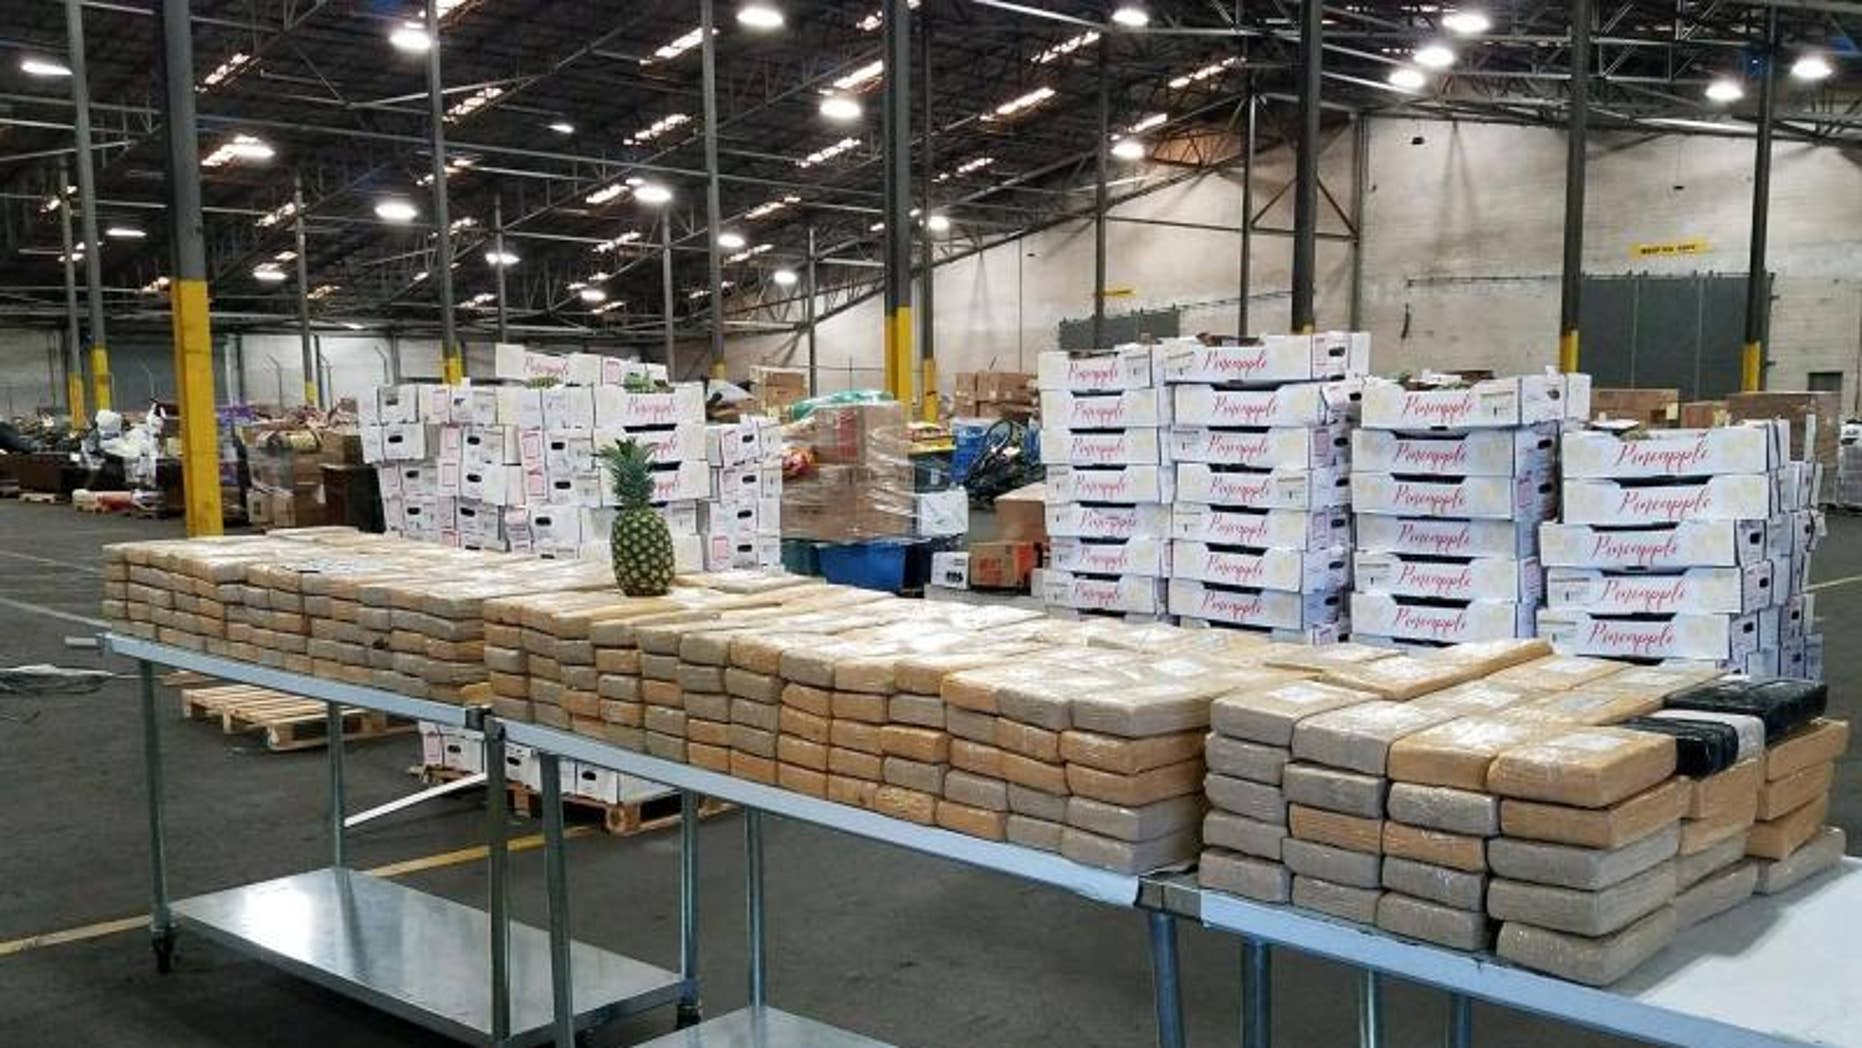 Customs and Border Protection announced Friday that cocaine valued at more than $19 million was seized after being discovered inside a shipment of pineapples.